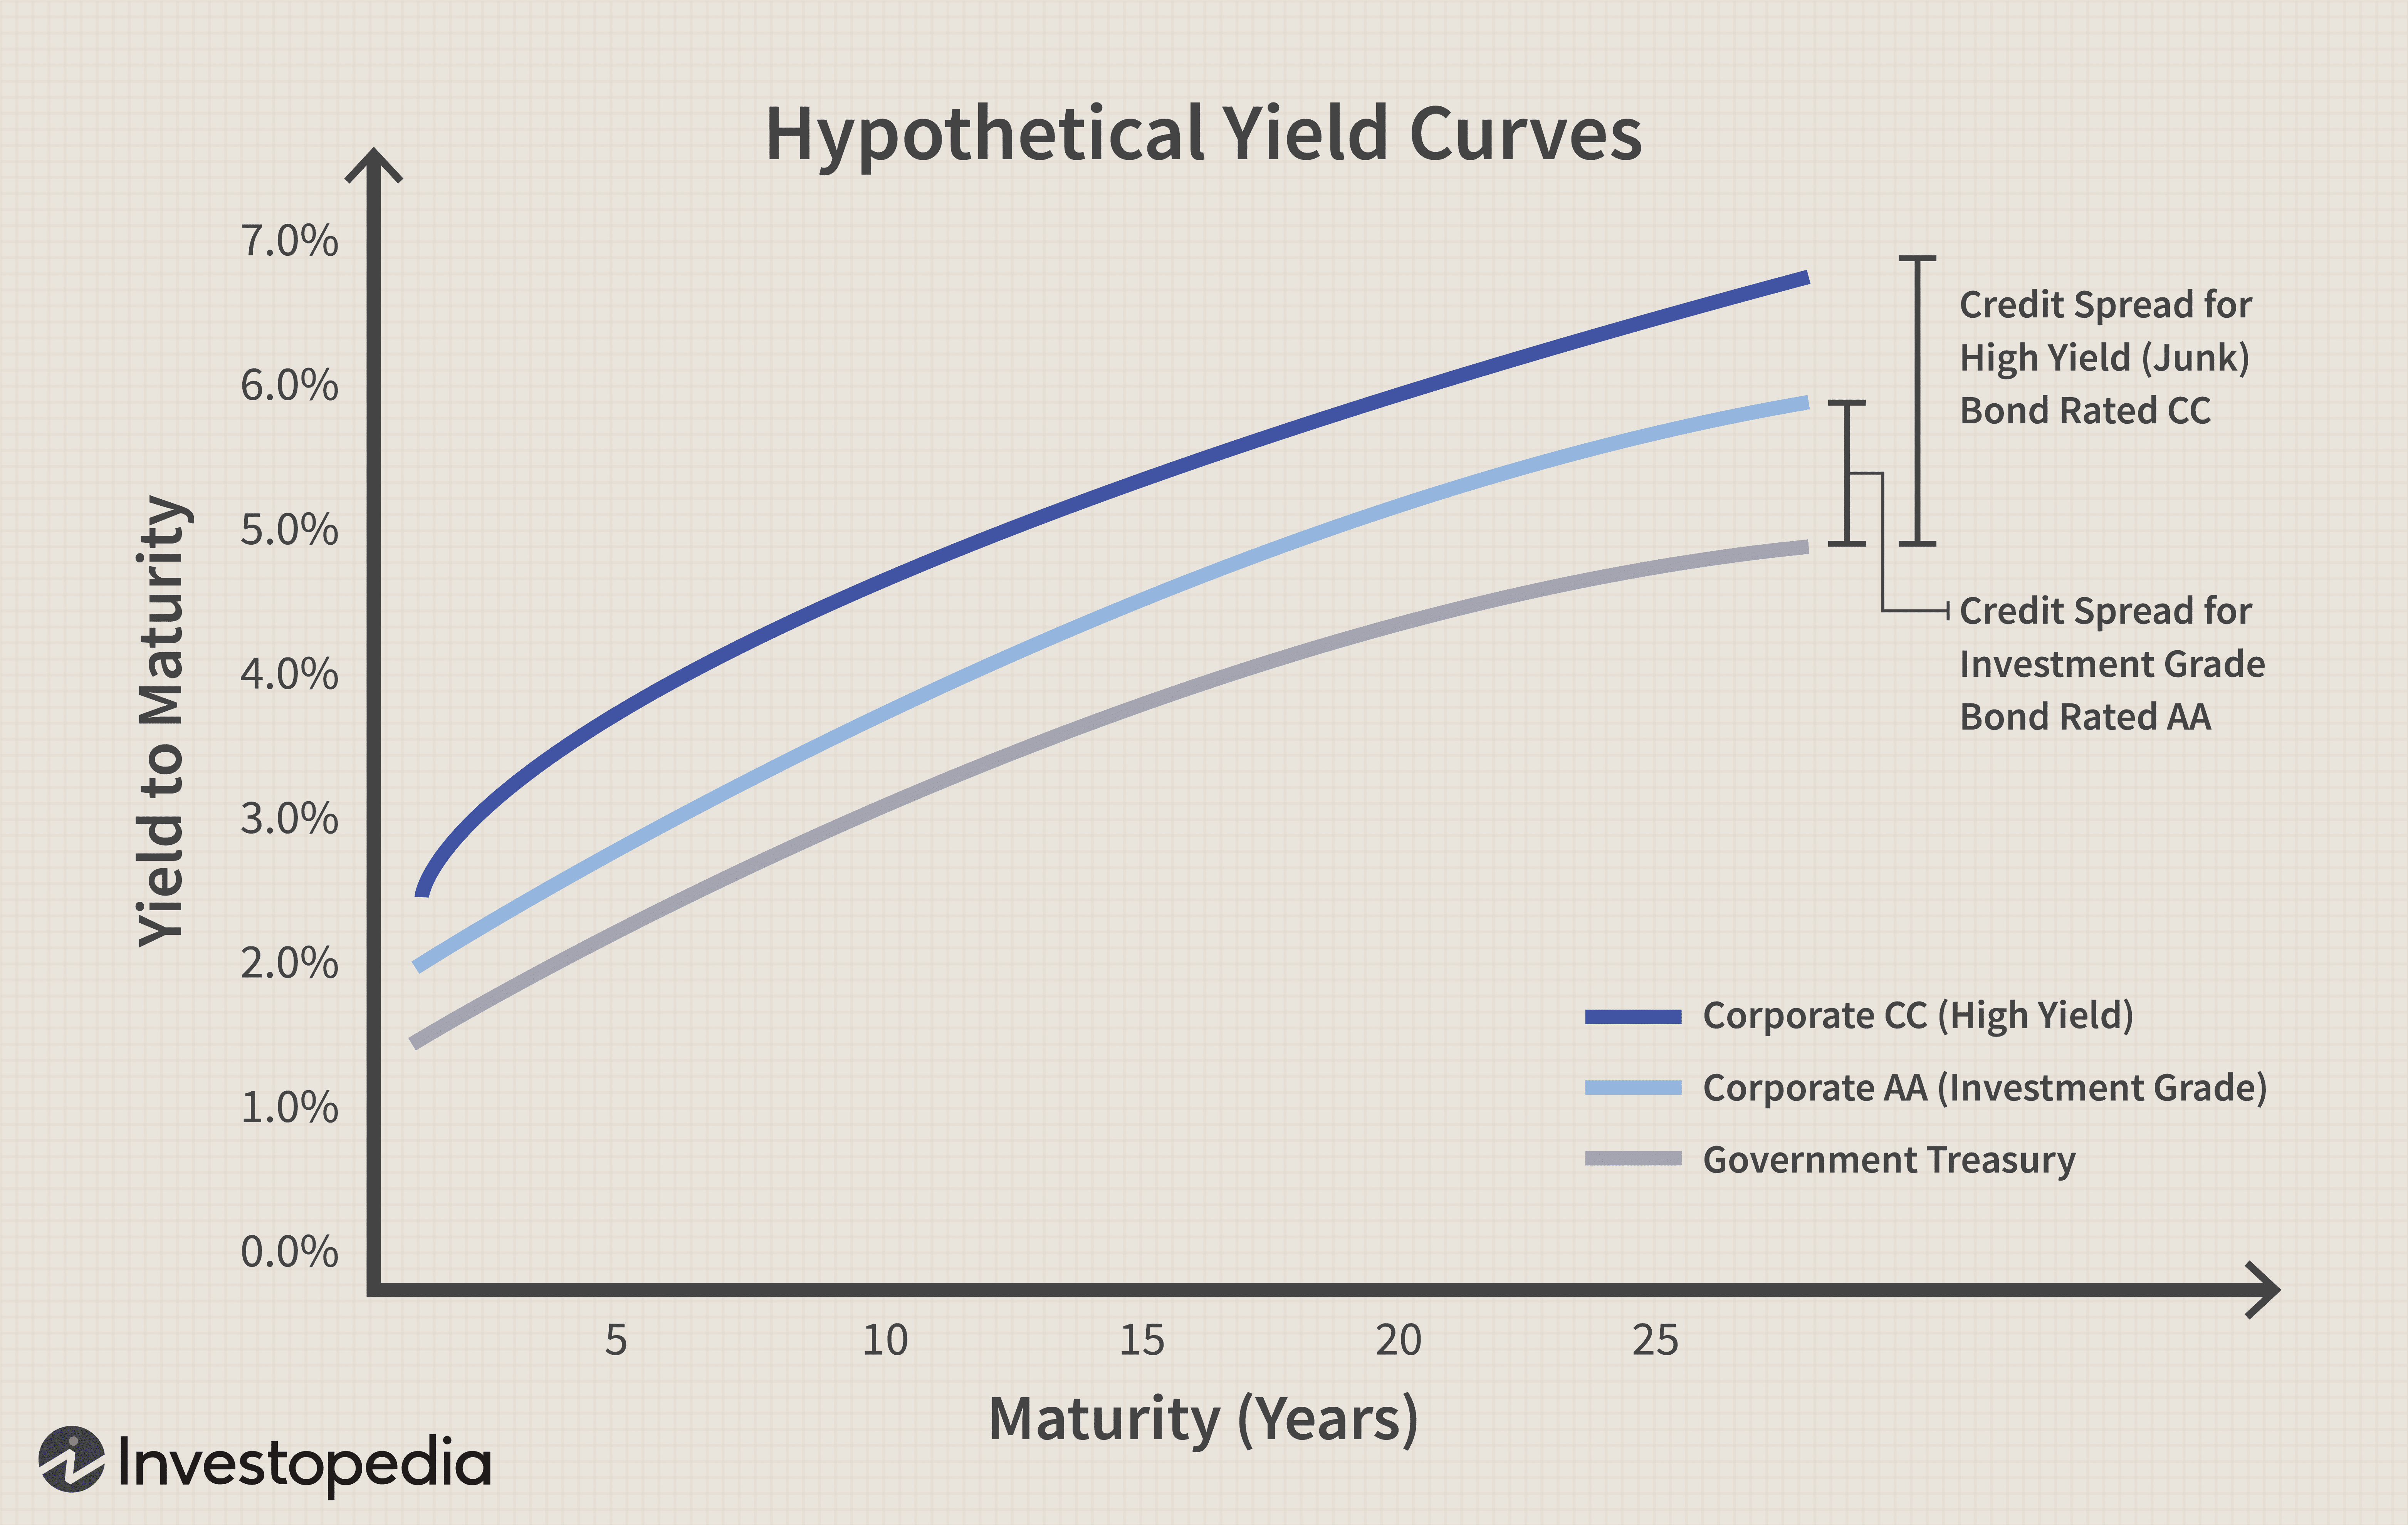 Hypothetical Yield Curves